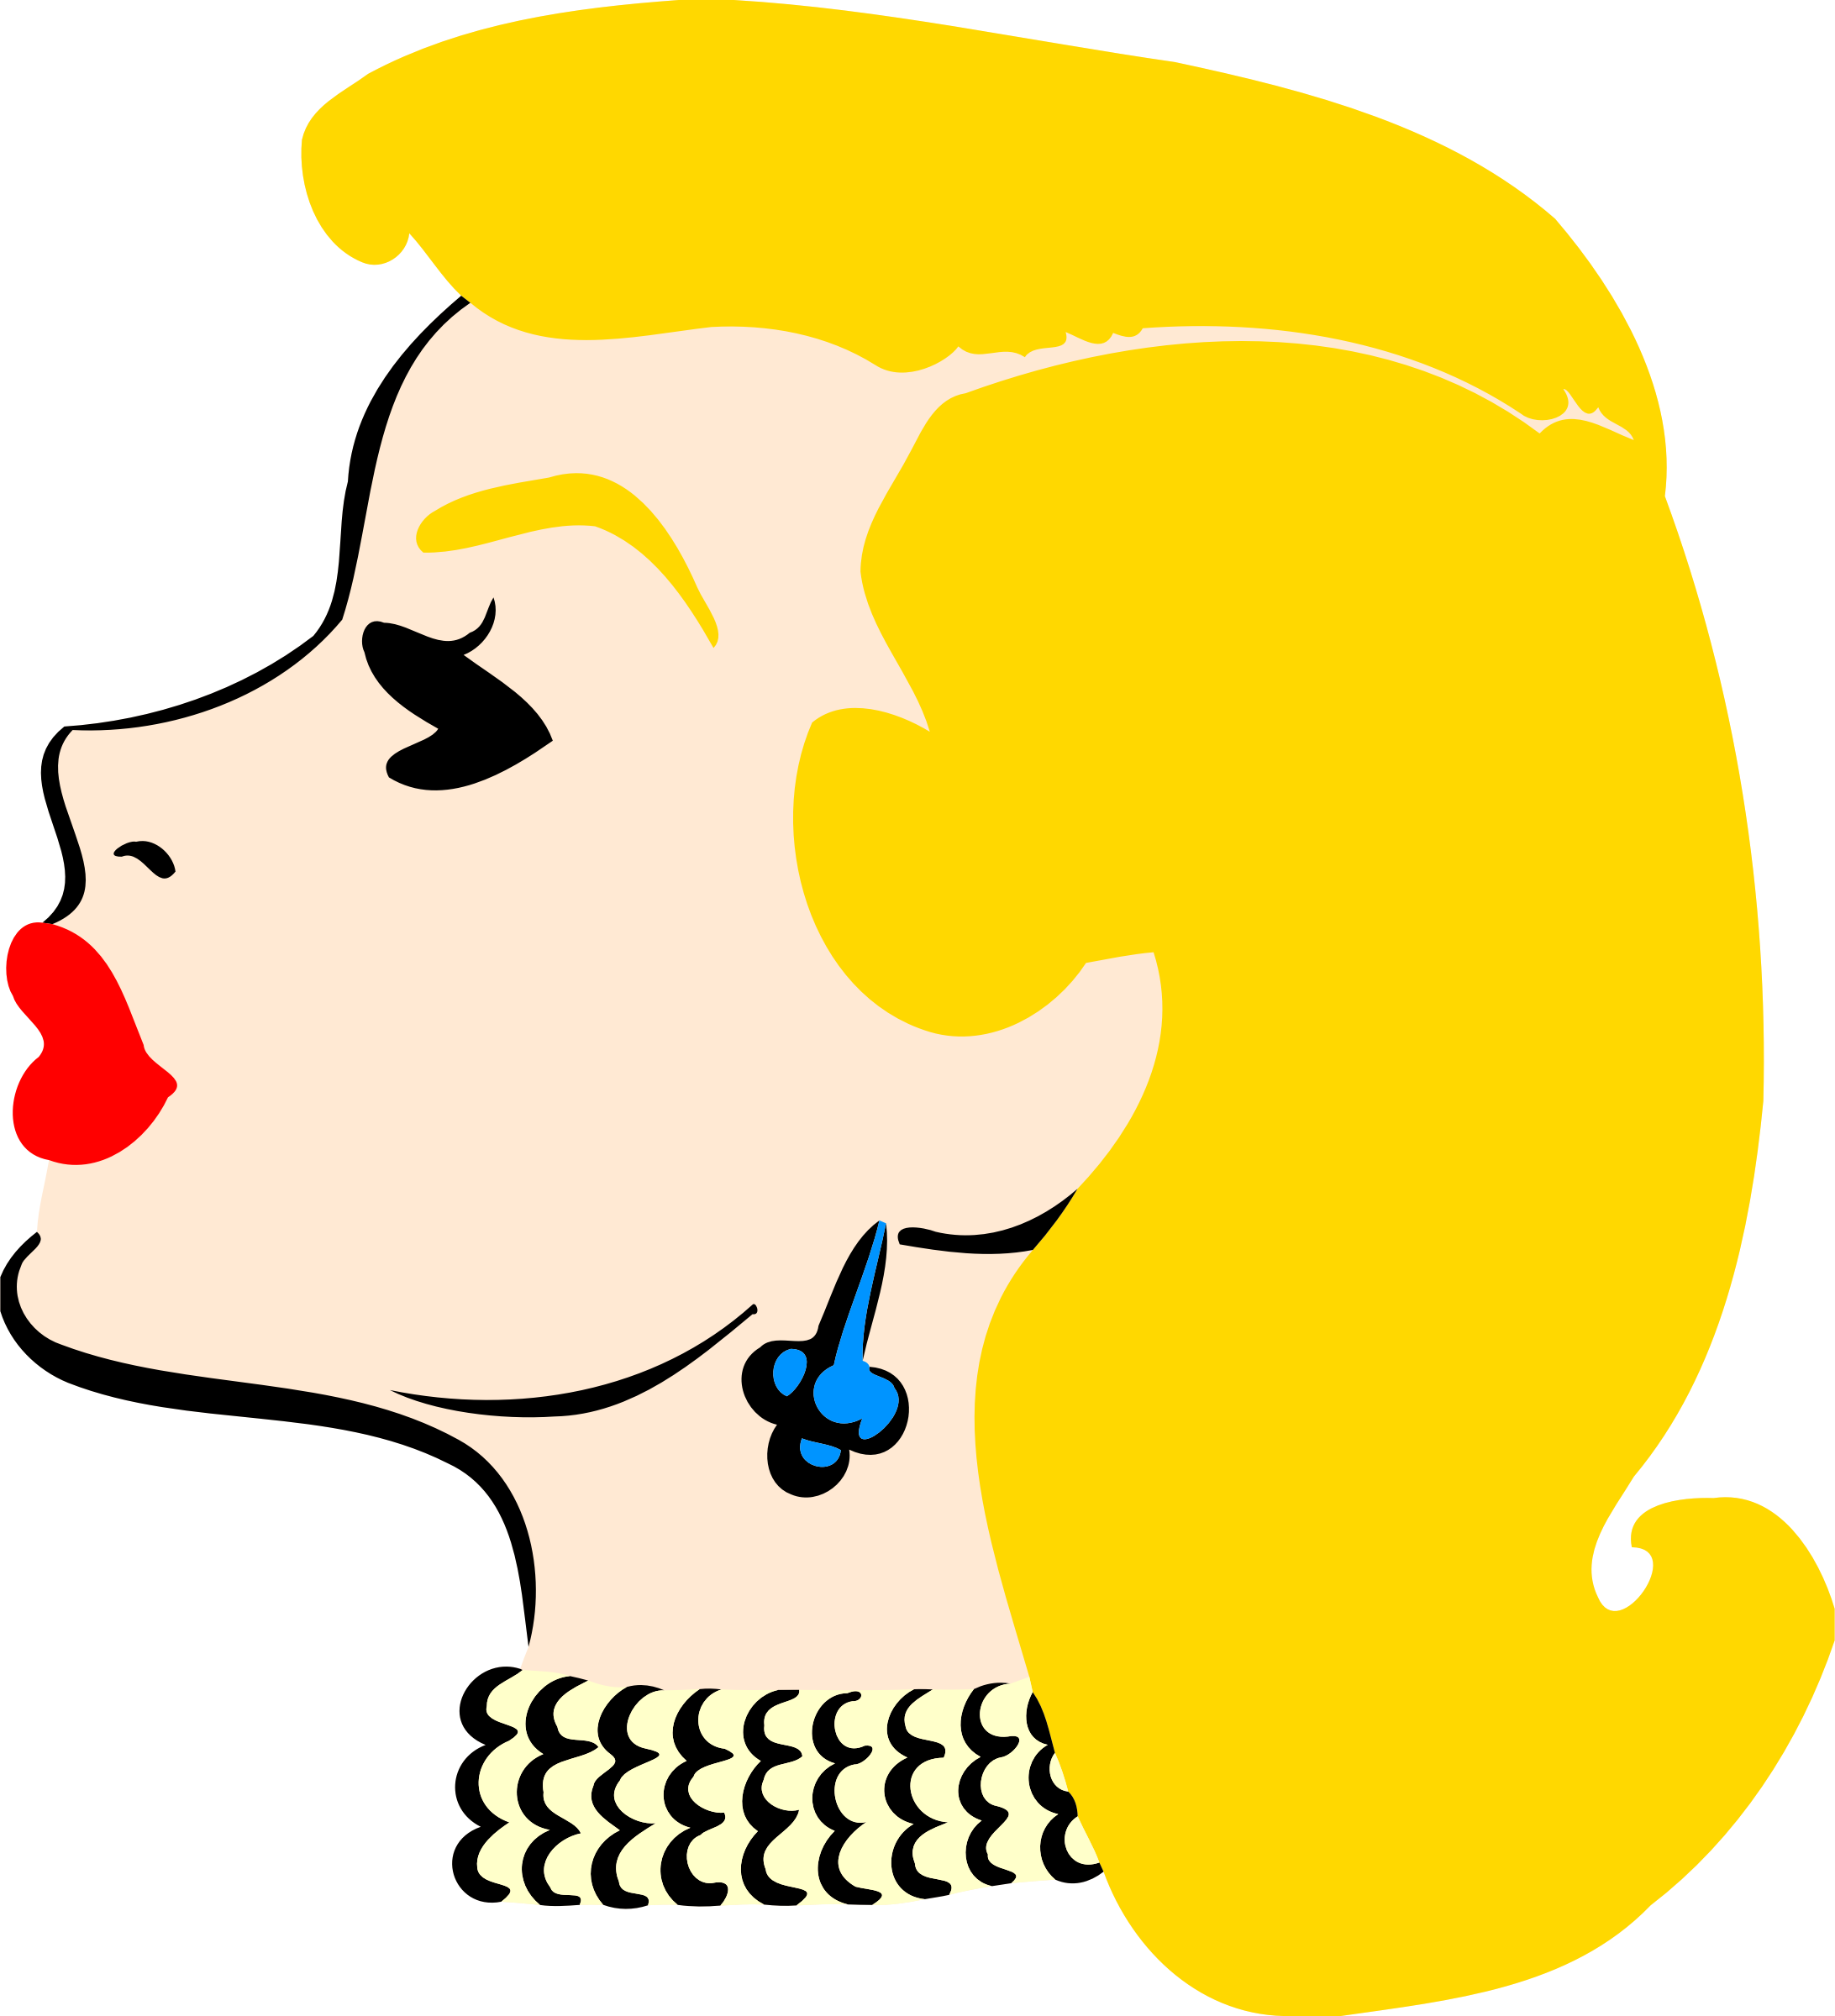 Lady clipart side view. S head in profile